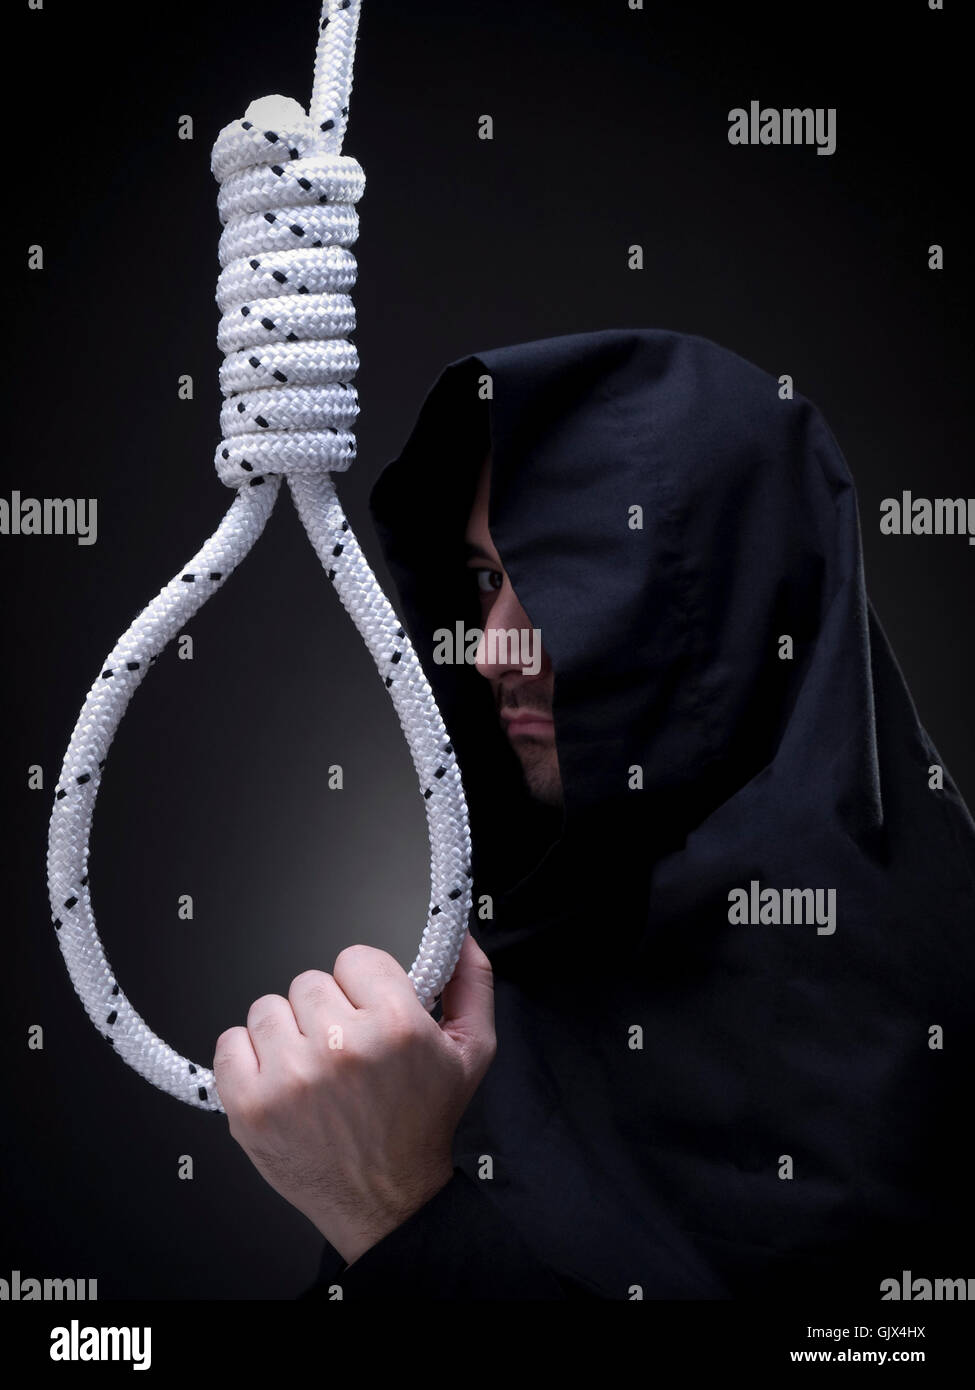 death hood rope - Stock Image